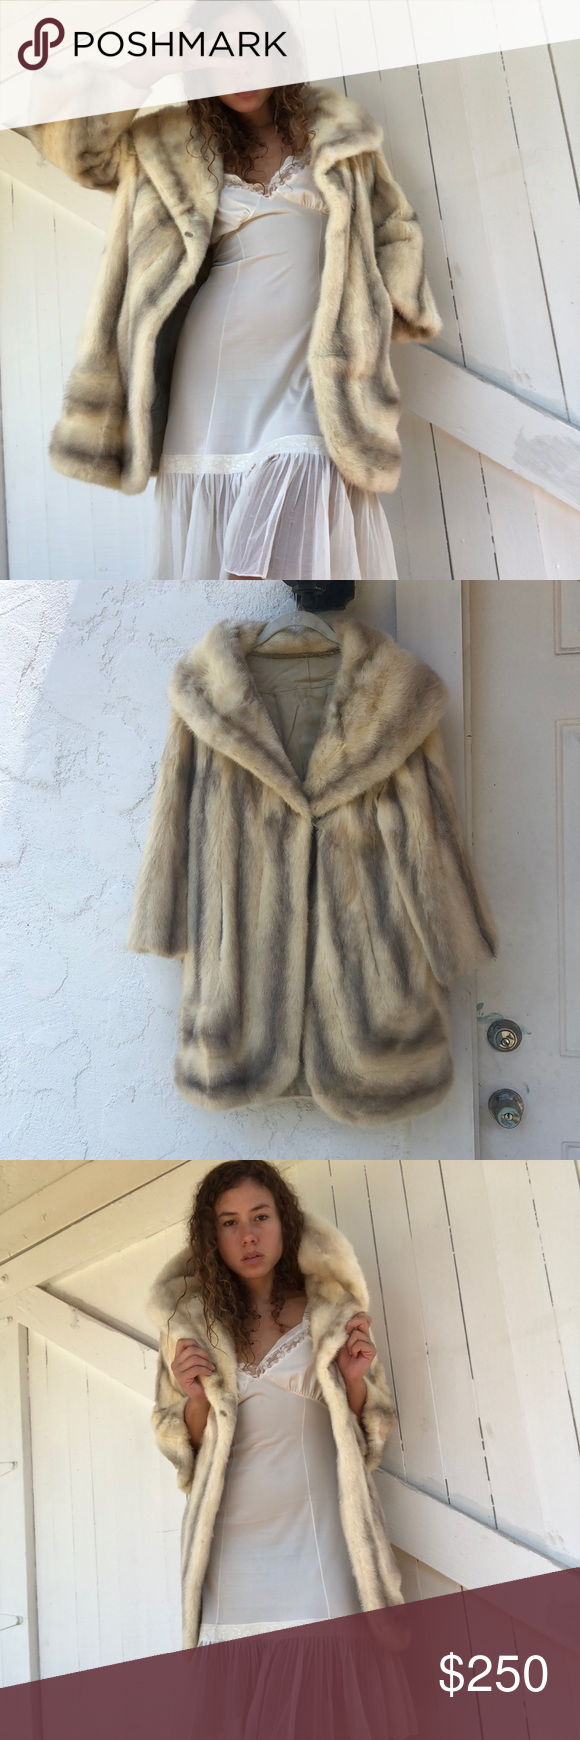 7e0e9237a Cream mink fur coat